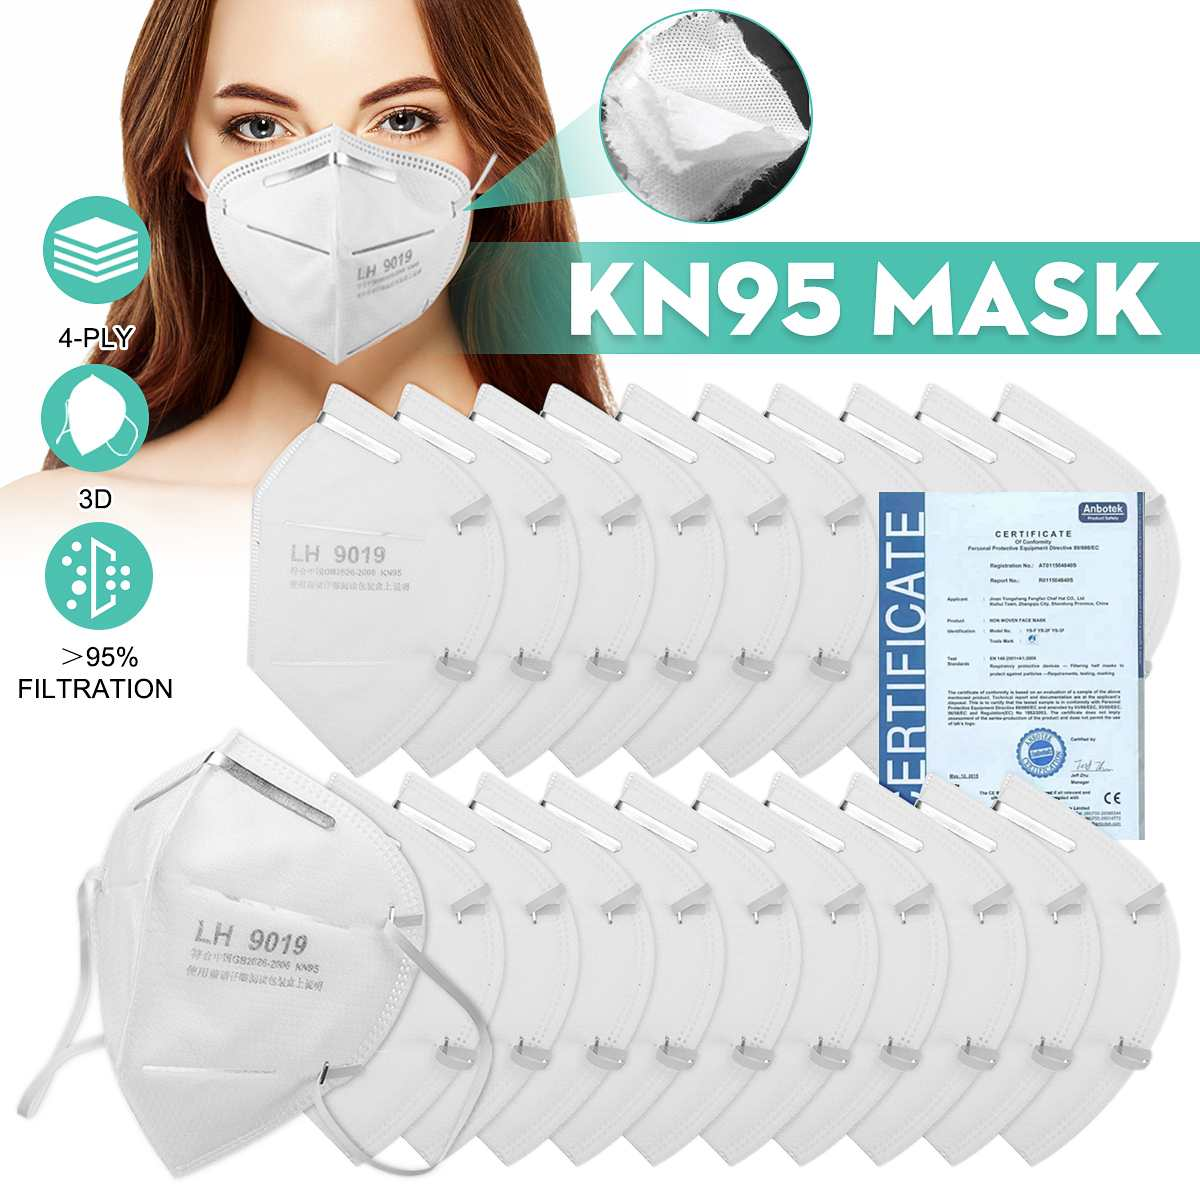 Buy Top Selling 10 to 100pcs KN95 Mask 4 PLY Filtration and elastic ear  Hook for Protection from Virus and Influenza Online ,Buy Top Selling 10 to 100pcs KN95 Mask 4 PLY Filtration and elastic ear  Hook for Protection from Virus and Influenza Online